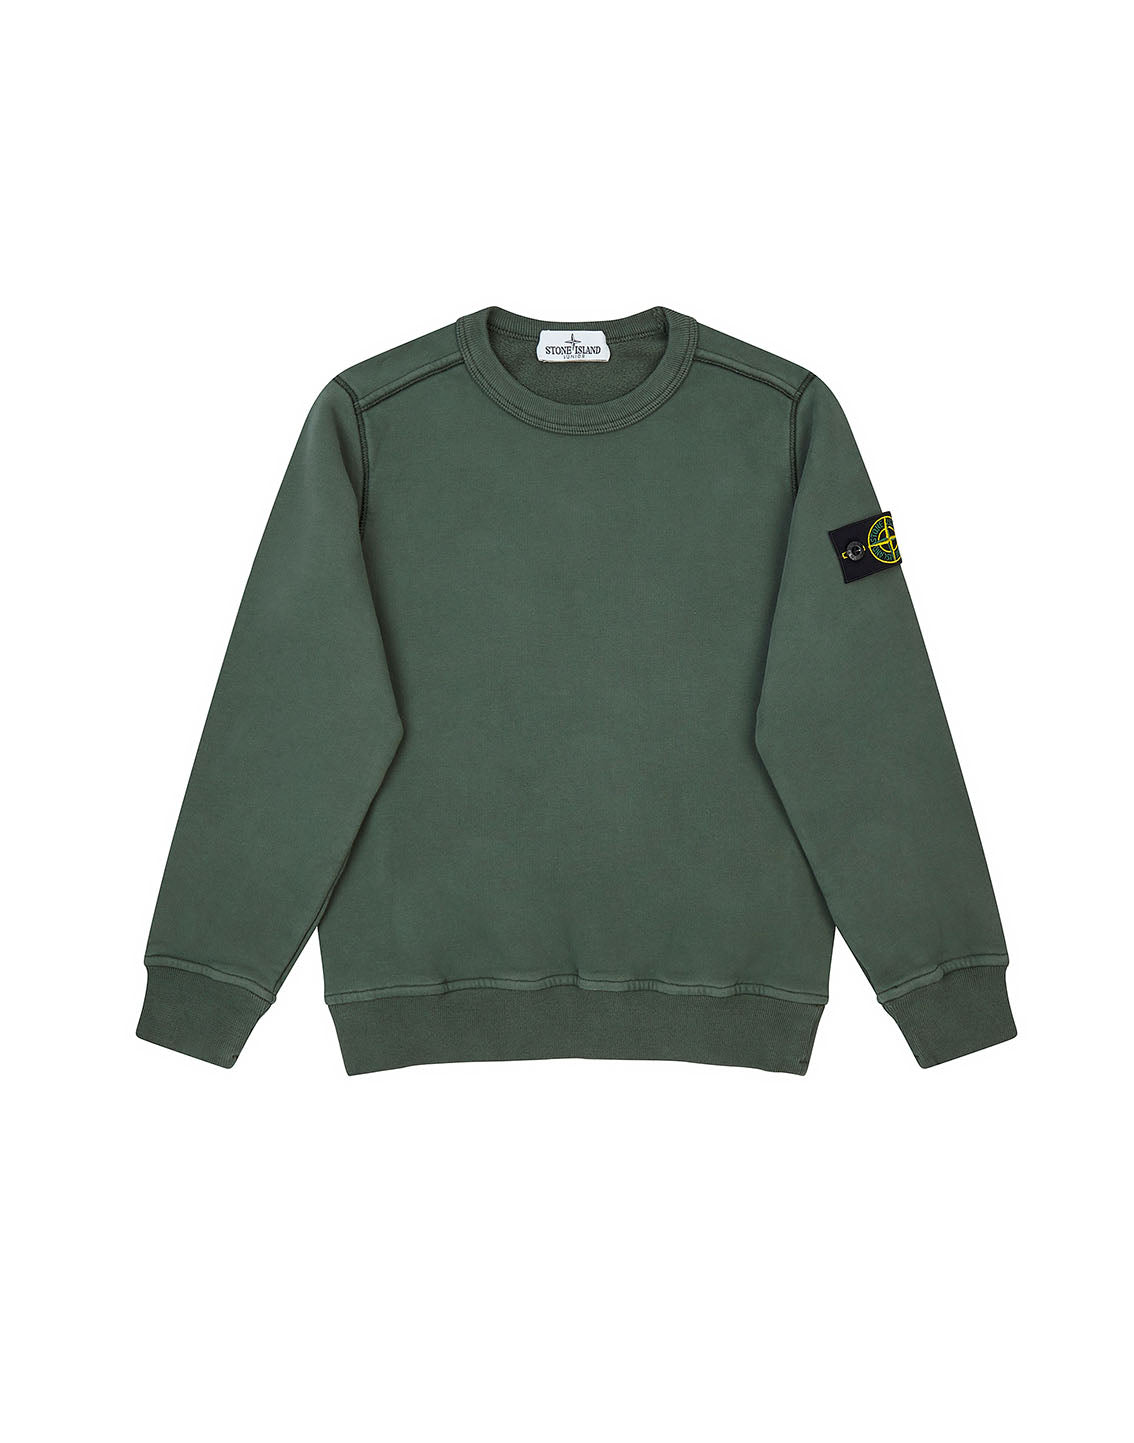 60940 COTTON FLEECE in Bottle Green